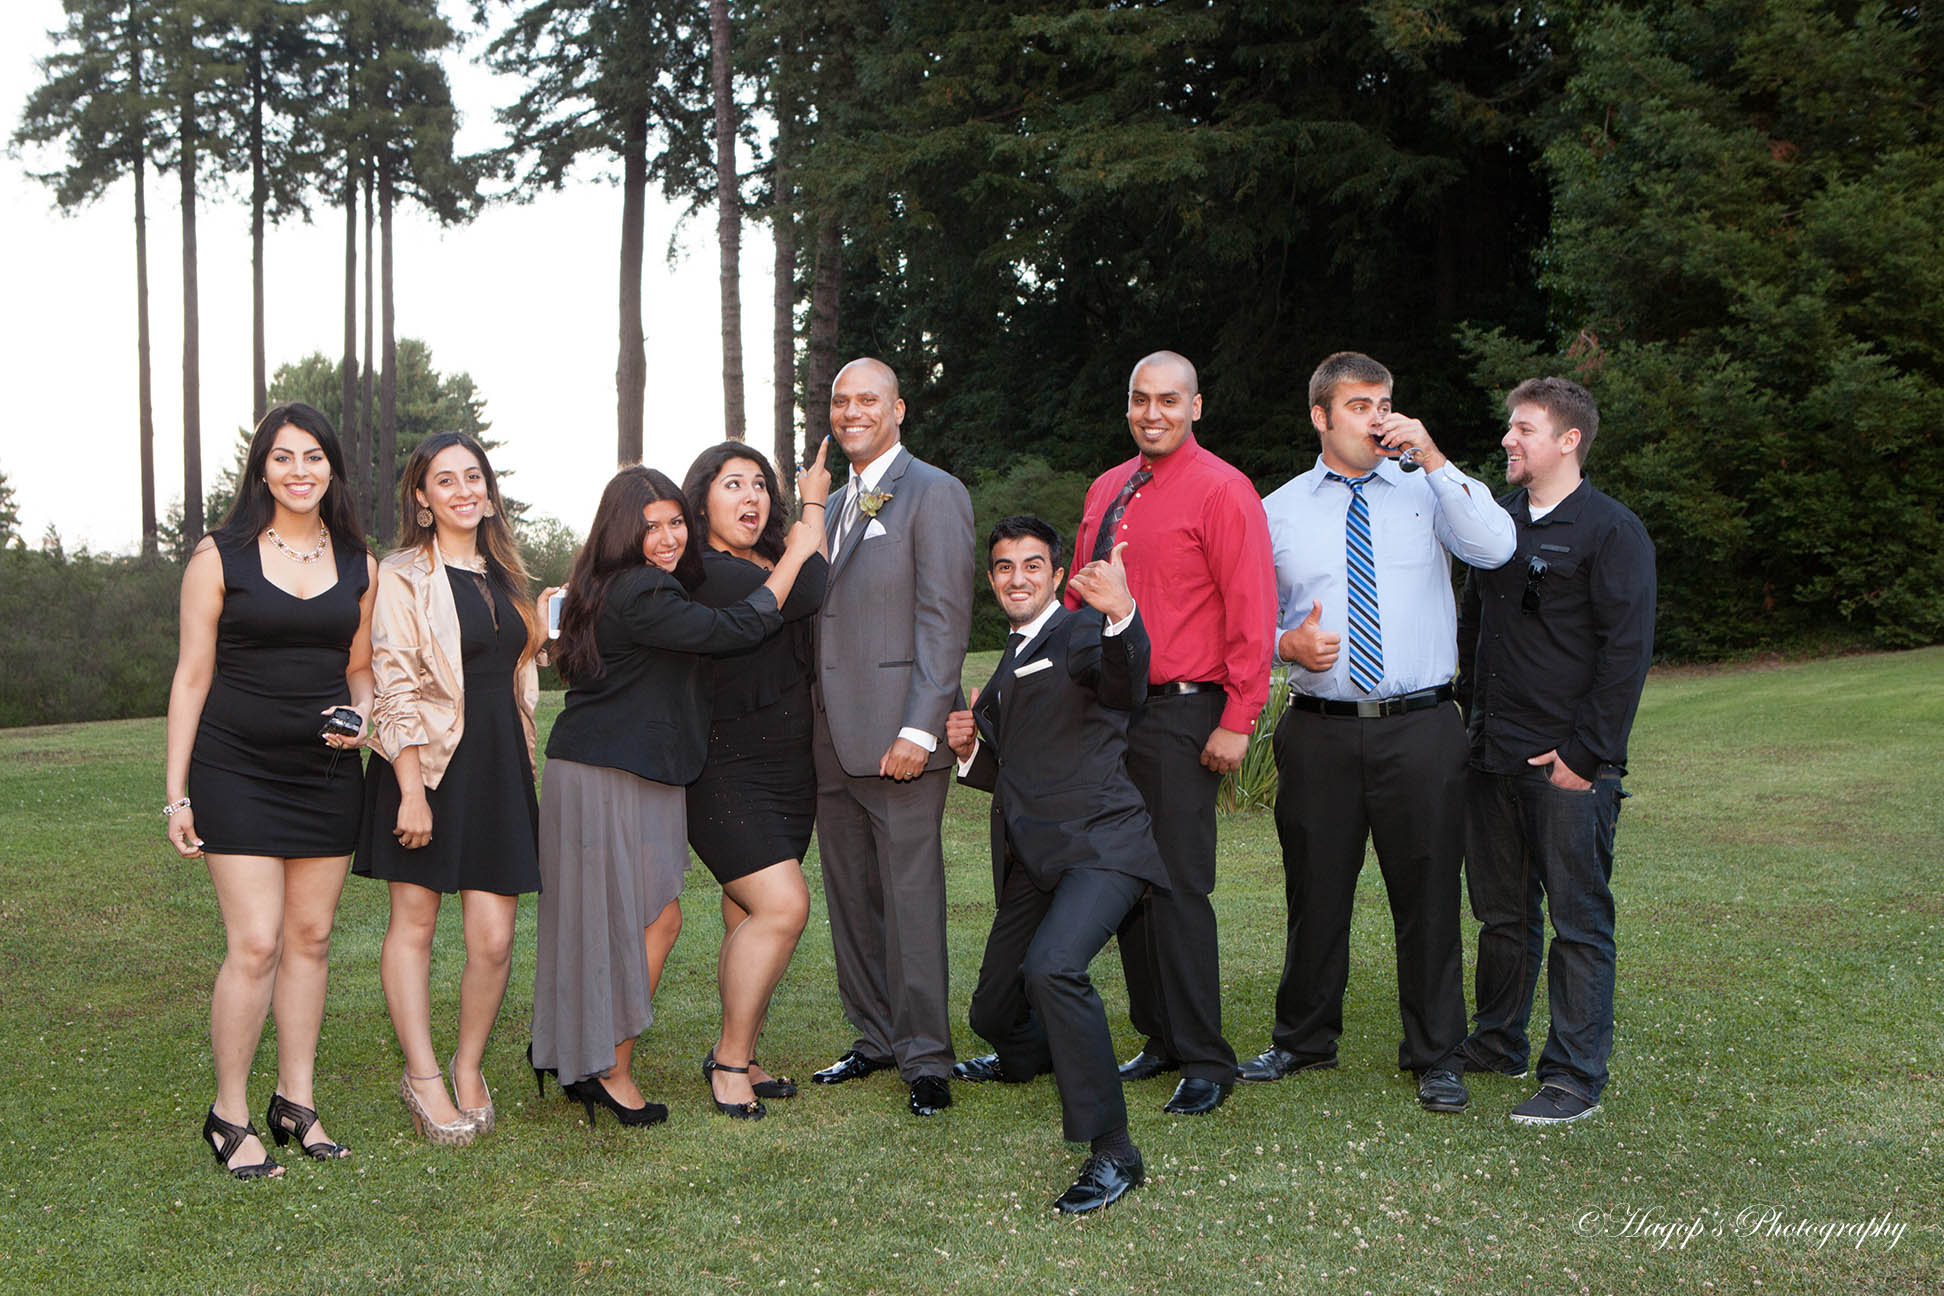 a fun photo of guests posing with the groom